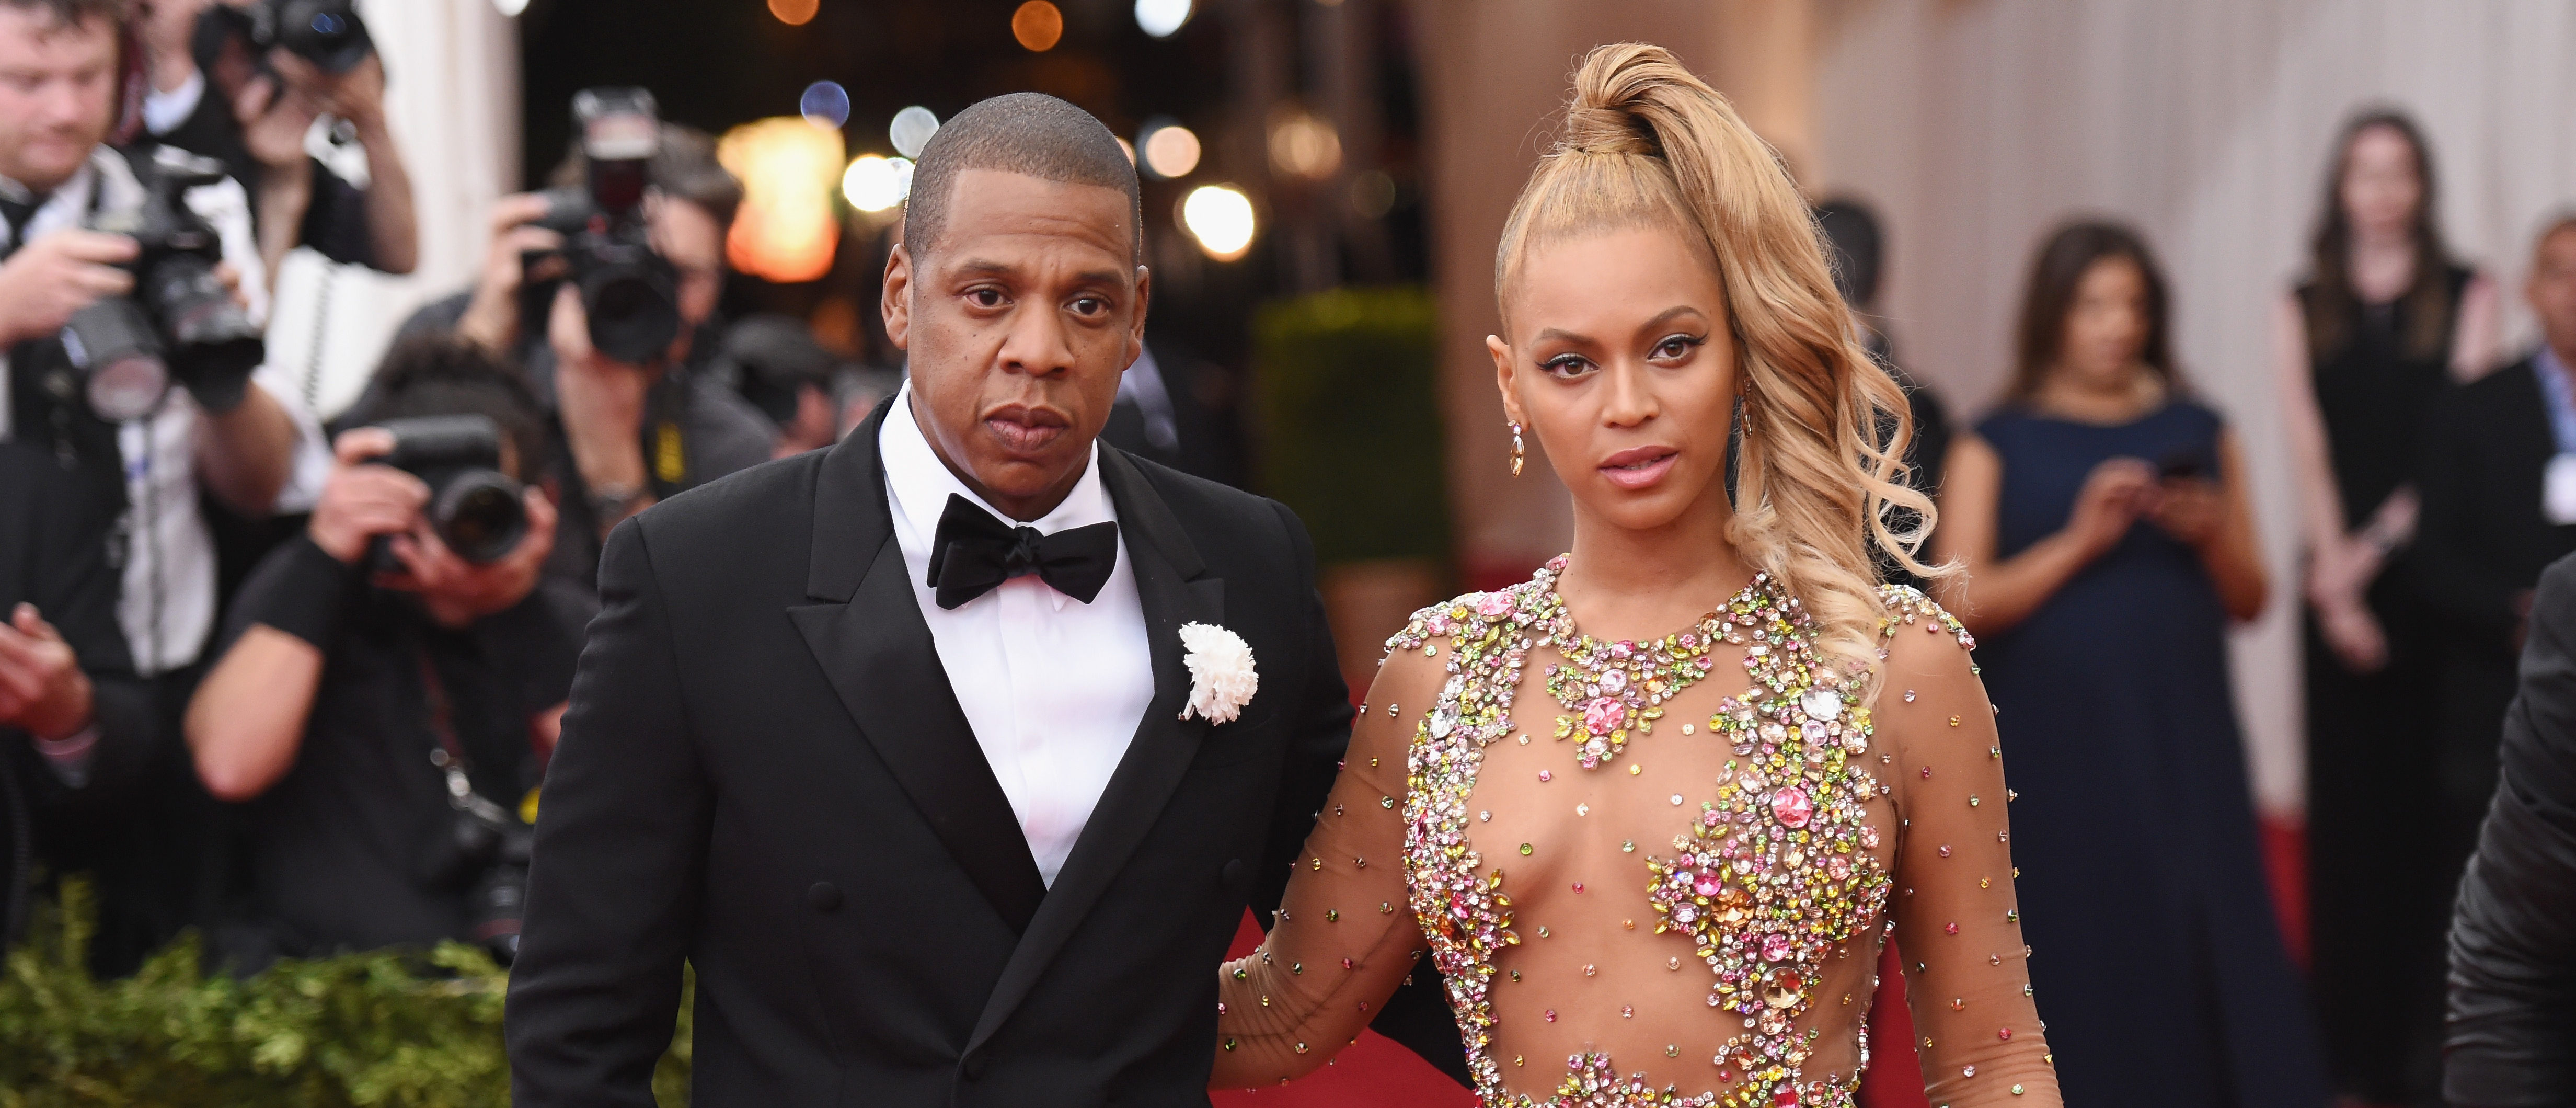 """NEW YORK, NY - MAY 04: Jay Z (L) and Beyonce attend the """"China: Through The Looking Glass"""" Costume Institute Benefit Gala at the Metropolitan Museum of Art on May 4, 2015 in New York City. (Photo by Mike Coppola/Getty Images)"""